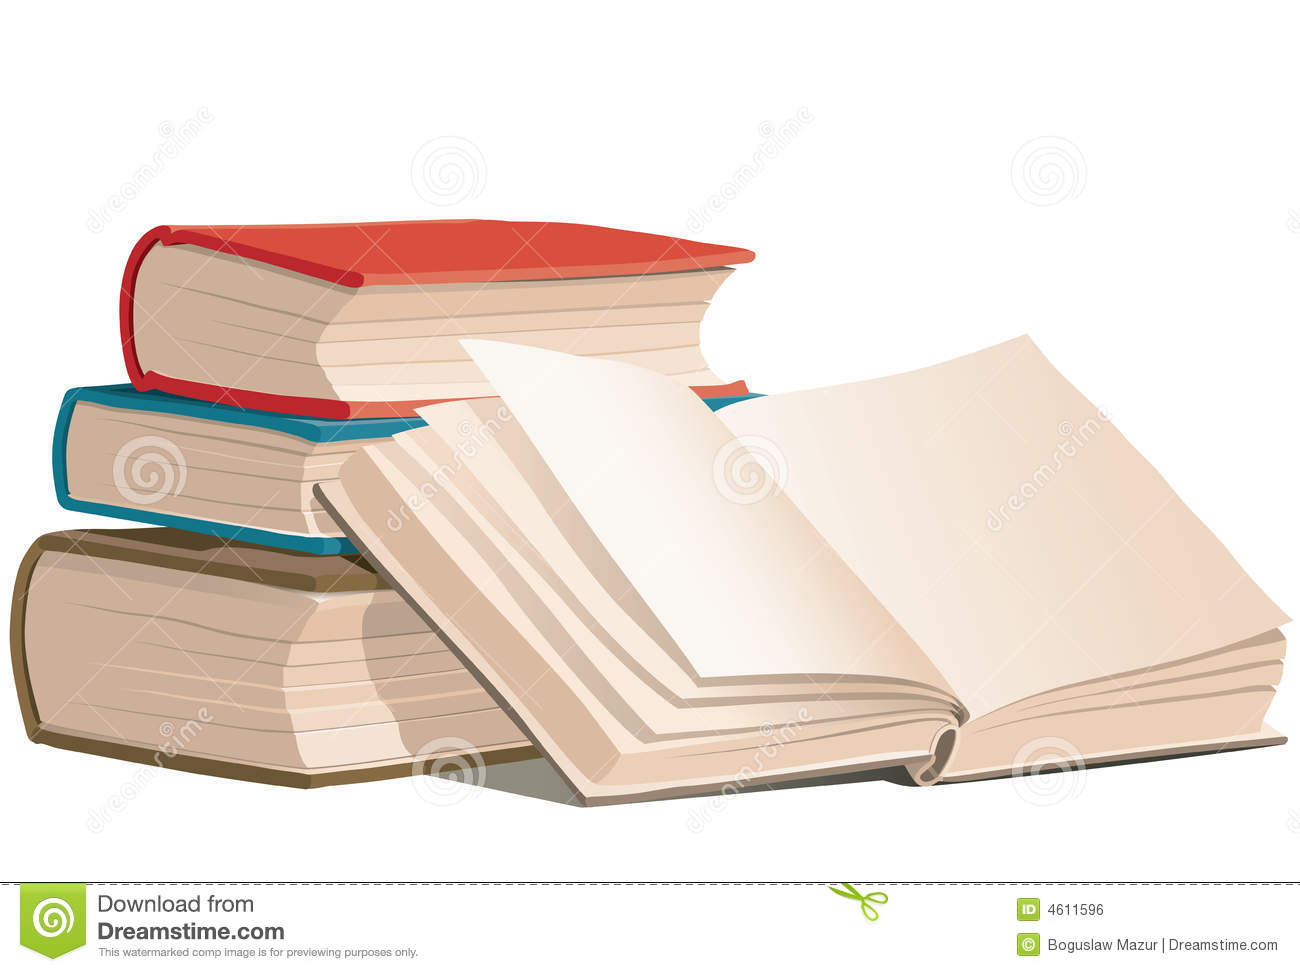 books-vector-4611596.jpg